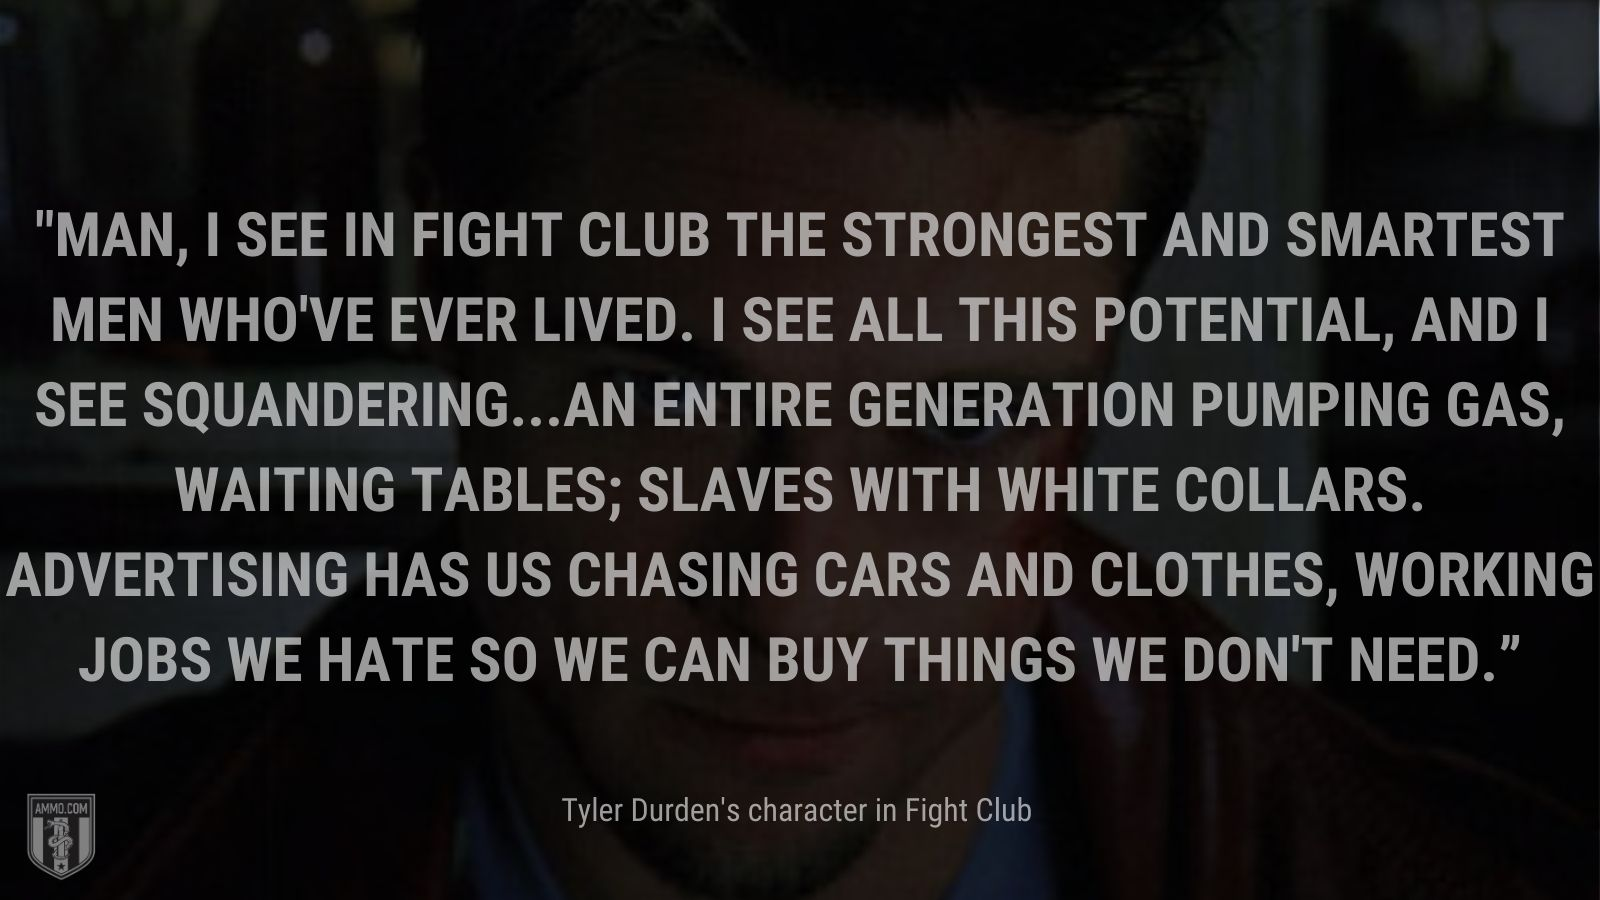 """""""Man, I see in fight club the strongest and smartest men who've ever lived. I see all this potential, and I see squandering...an entire generation pumping gas, waiting tables; slaves with white collars. Advertising has us chasing cars and clothes, working jobs we hate so we can buy things we don't need."""" - Tyler Durden's character Fight Club"""